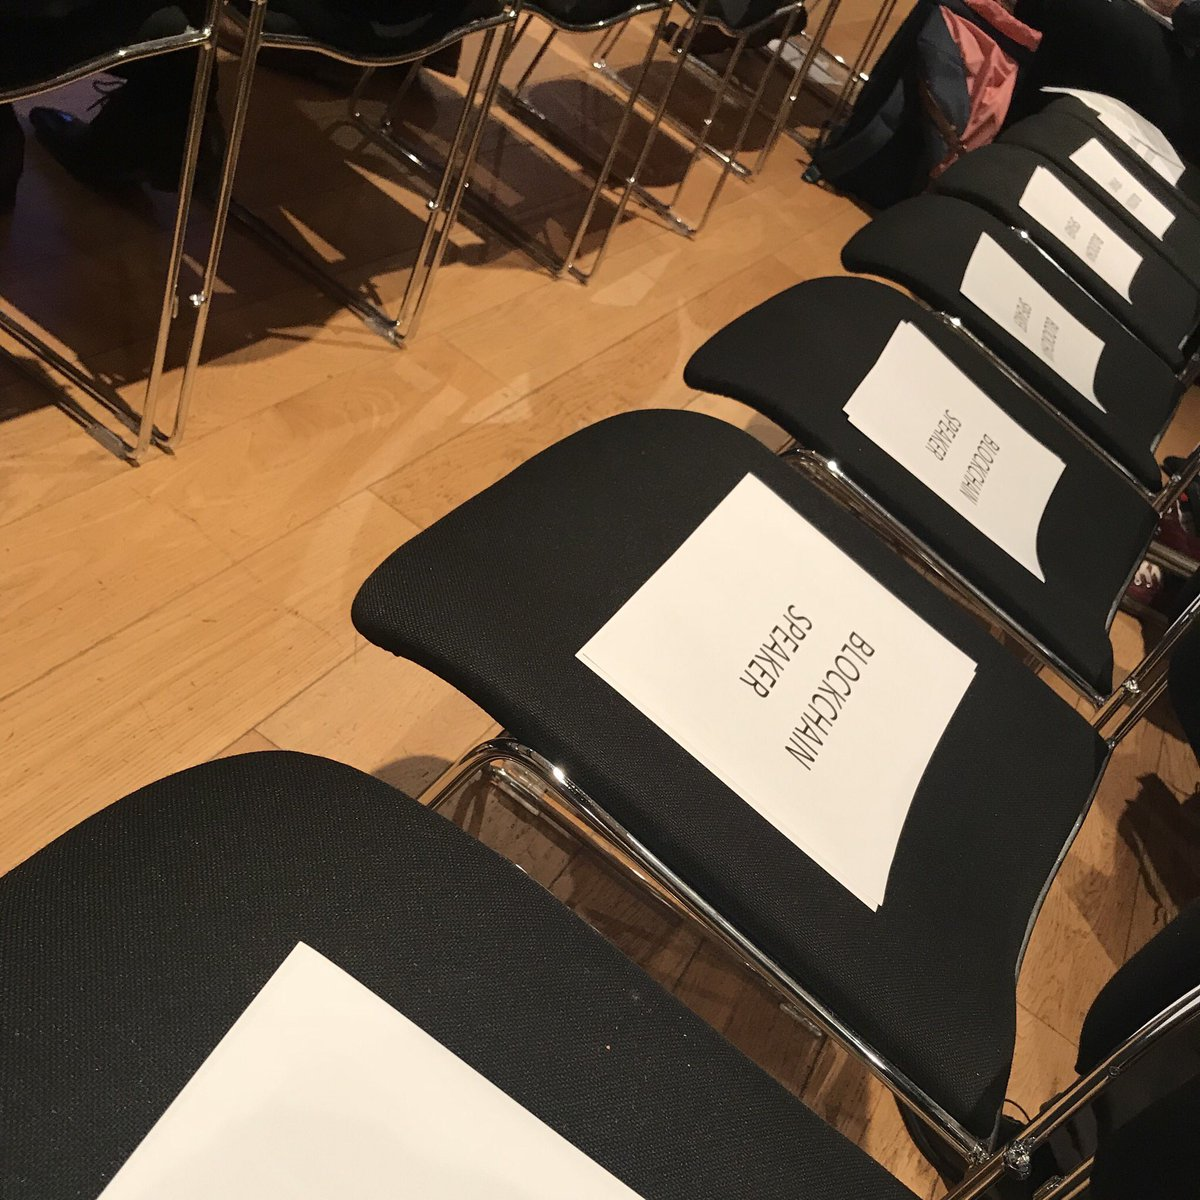 #Valus team is part of @BlockchainAdria. Waiting for our presentation, we will keep you posted <br>http://pic.twitter.com/QG7i2jc7pM